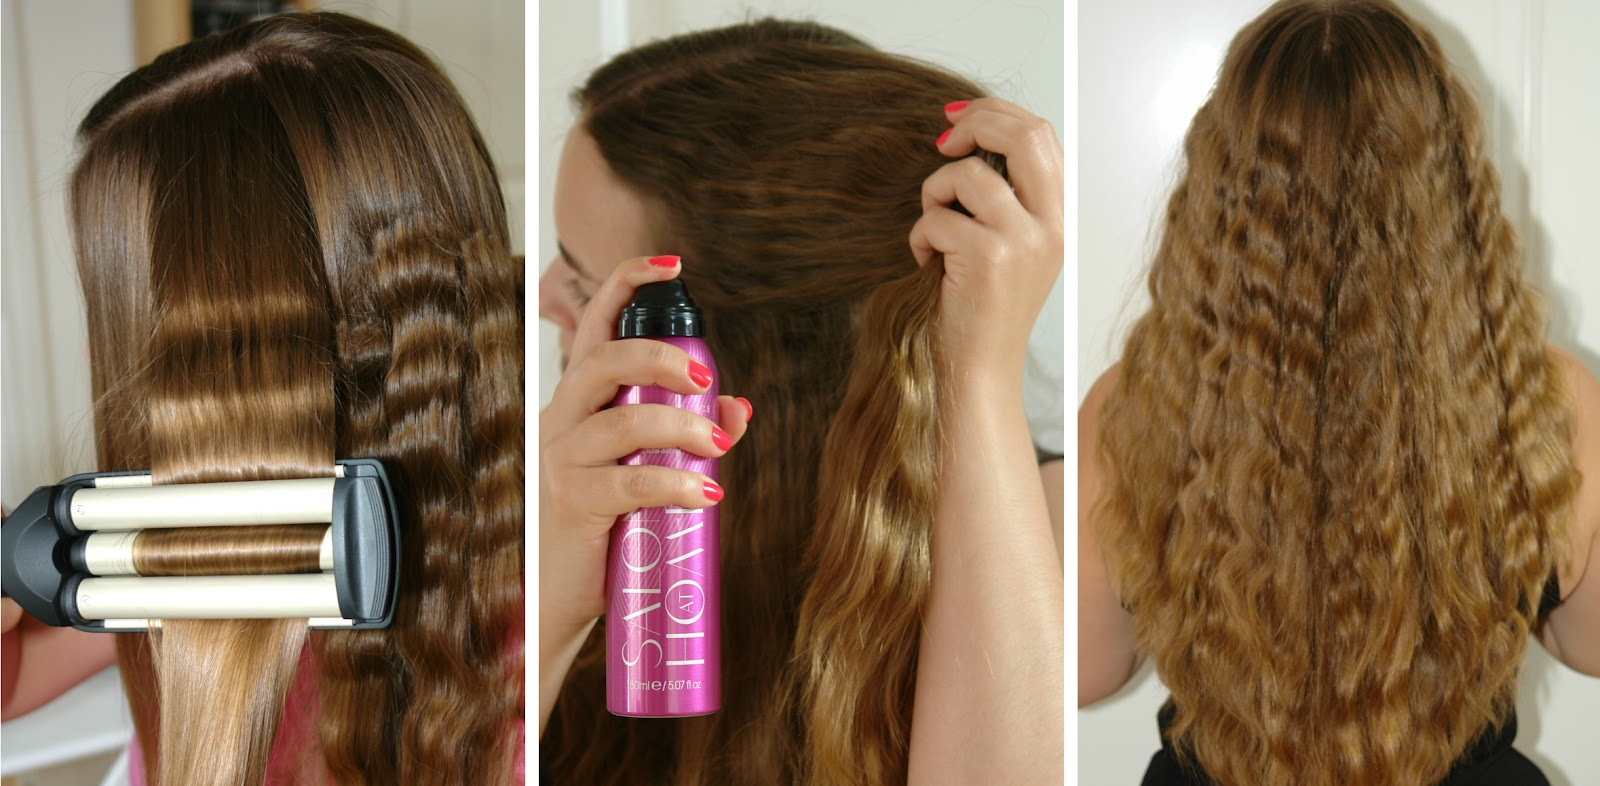 Festival Hairstyle Tutorial, BaByliss, hair, headband, tutorial, TRESemmé, BaByliss Wave Envy, styling tool, haircare, hairstyle, beauty blogger, UK blog